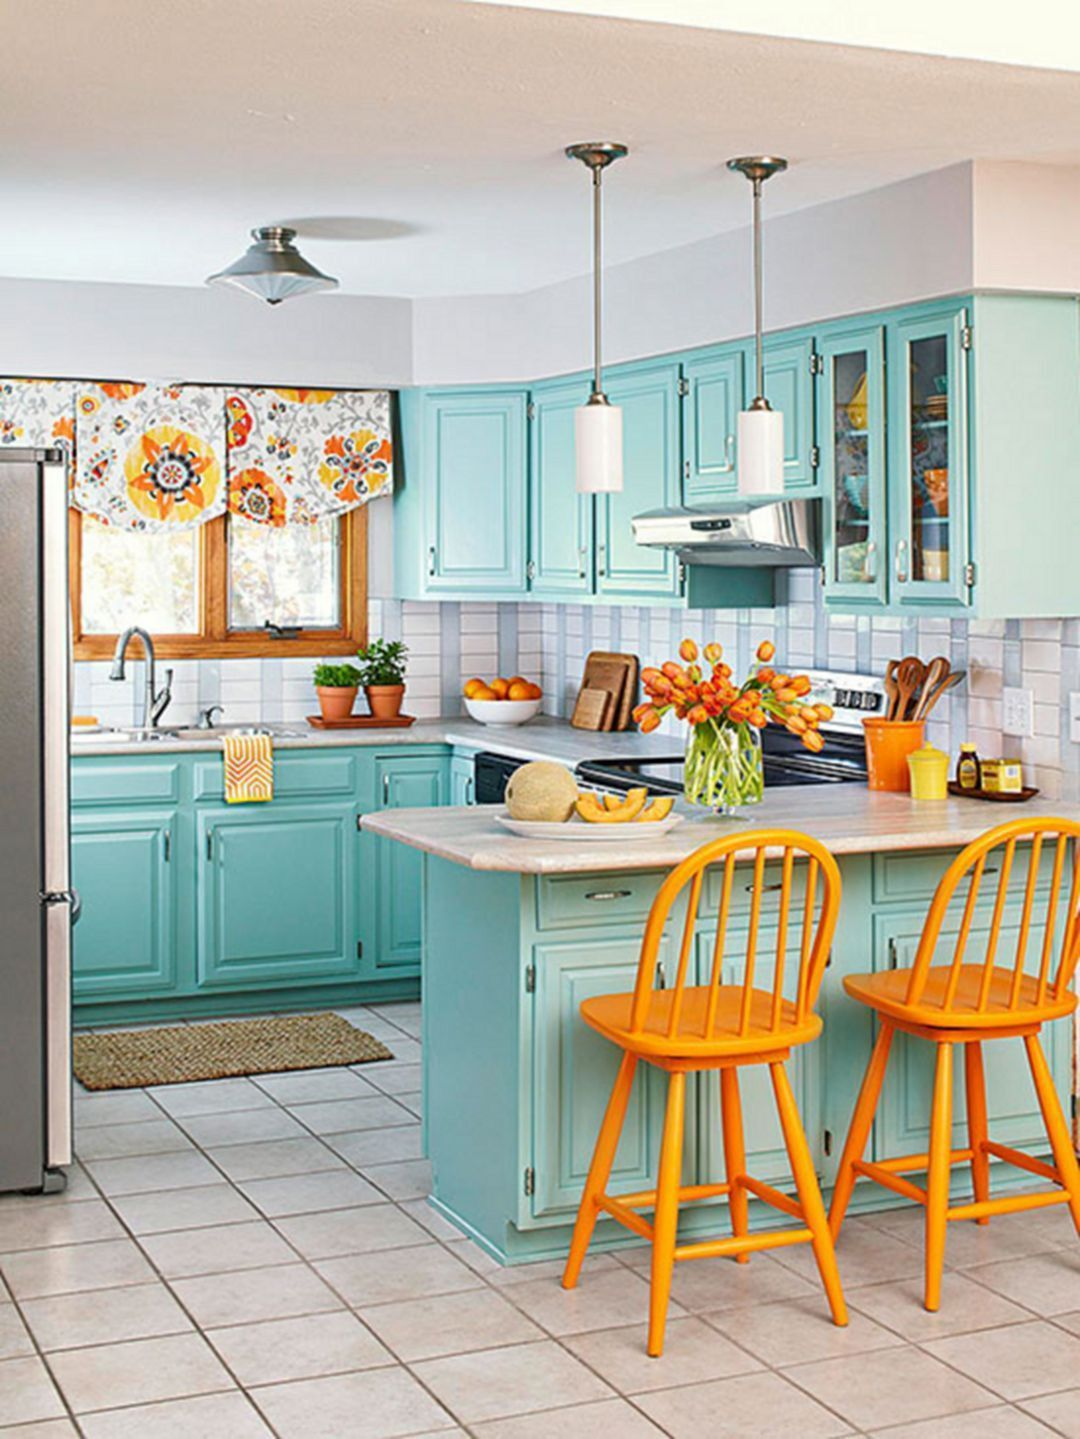 10 Colorful Kitchen Ideas Stunning Colorful Kitchen Design Ideas For Exciting Cooking Trendy Kitchen Backsplash New Kitchen Cabinets Colorful Kitchen Decor